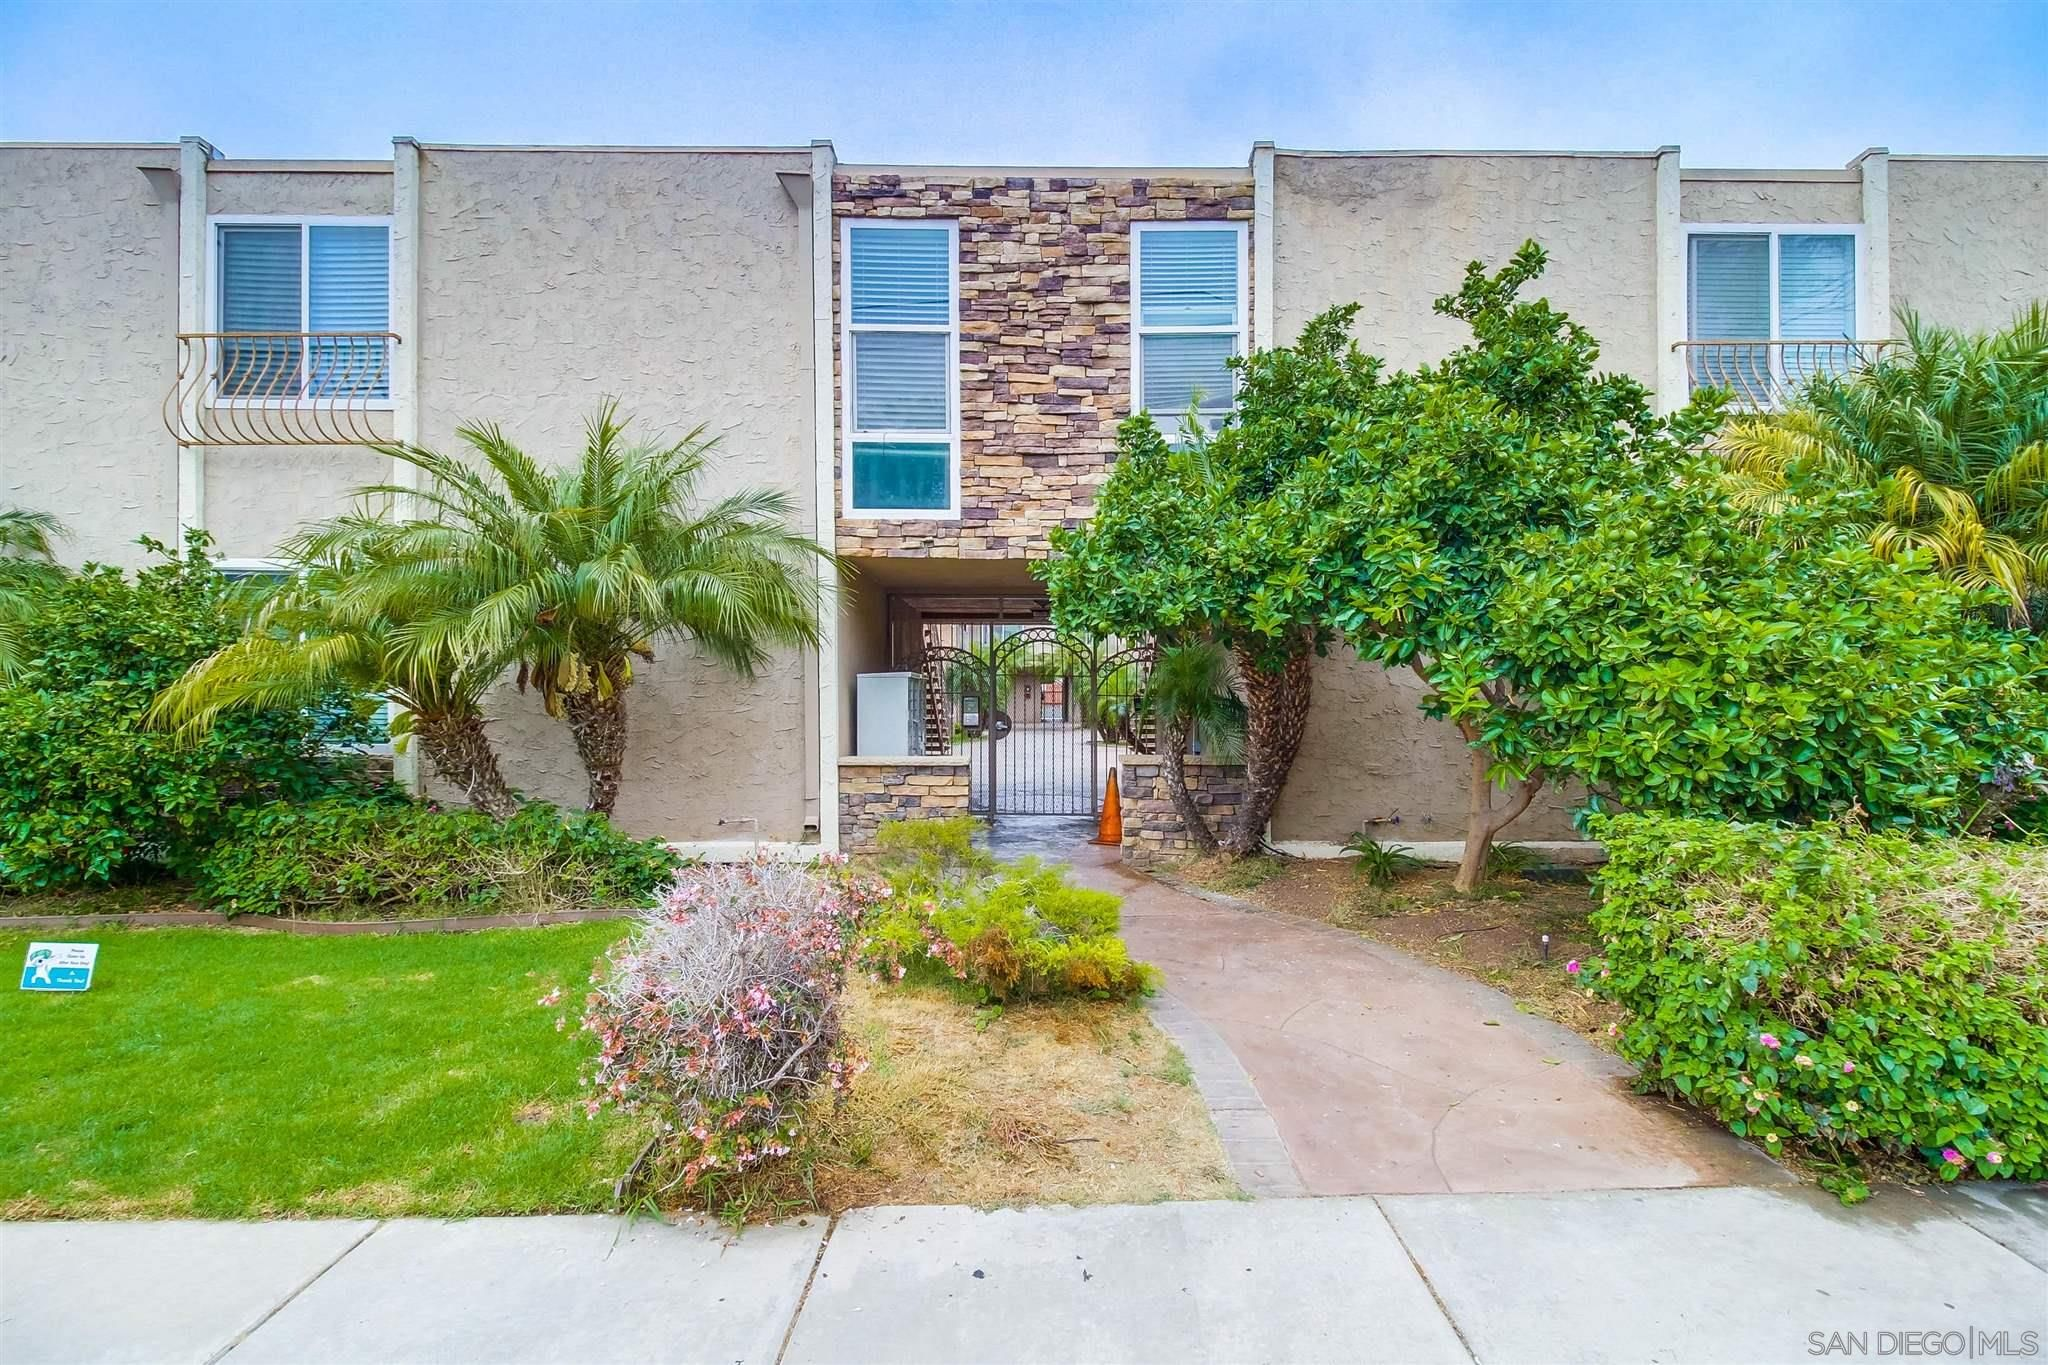 Main Photo: IMPERIAL BEACH Condo for sale : 2 bedrooms : 1472 Iris Ave #5